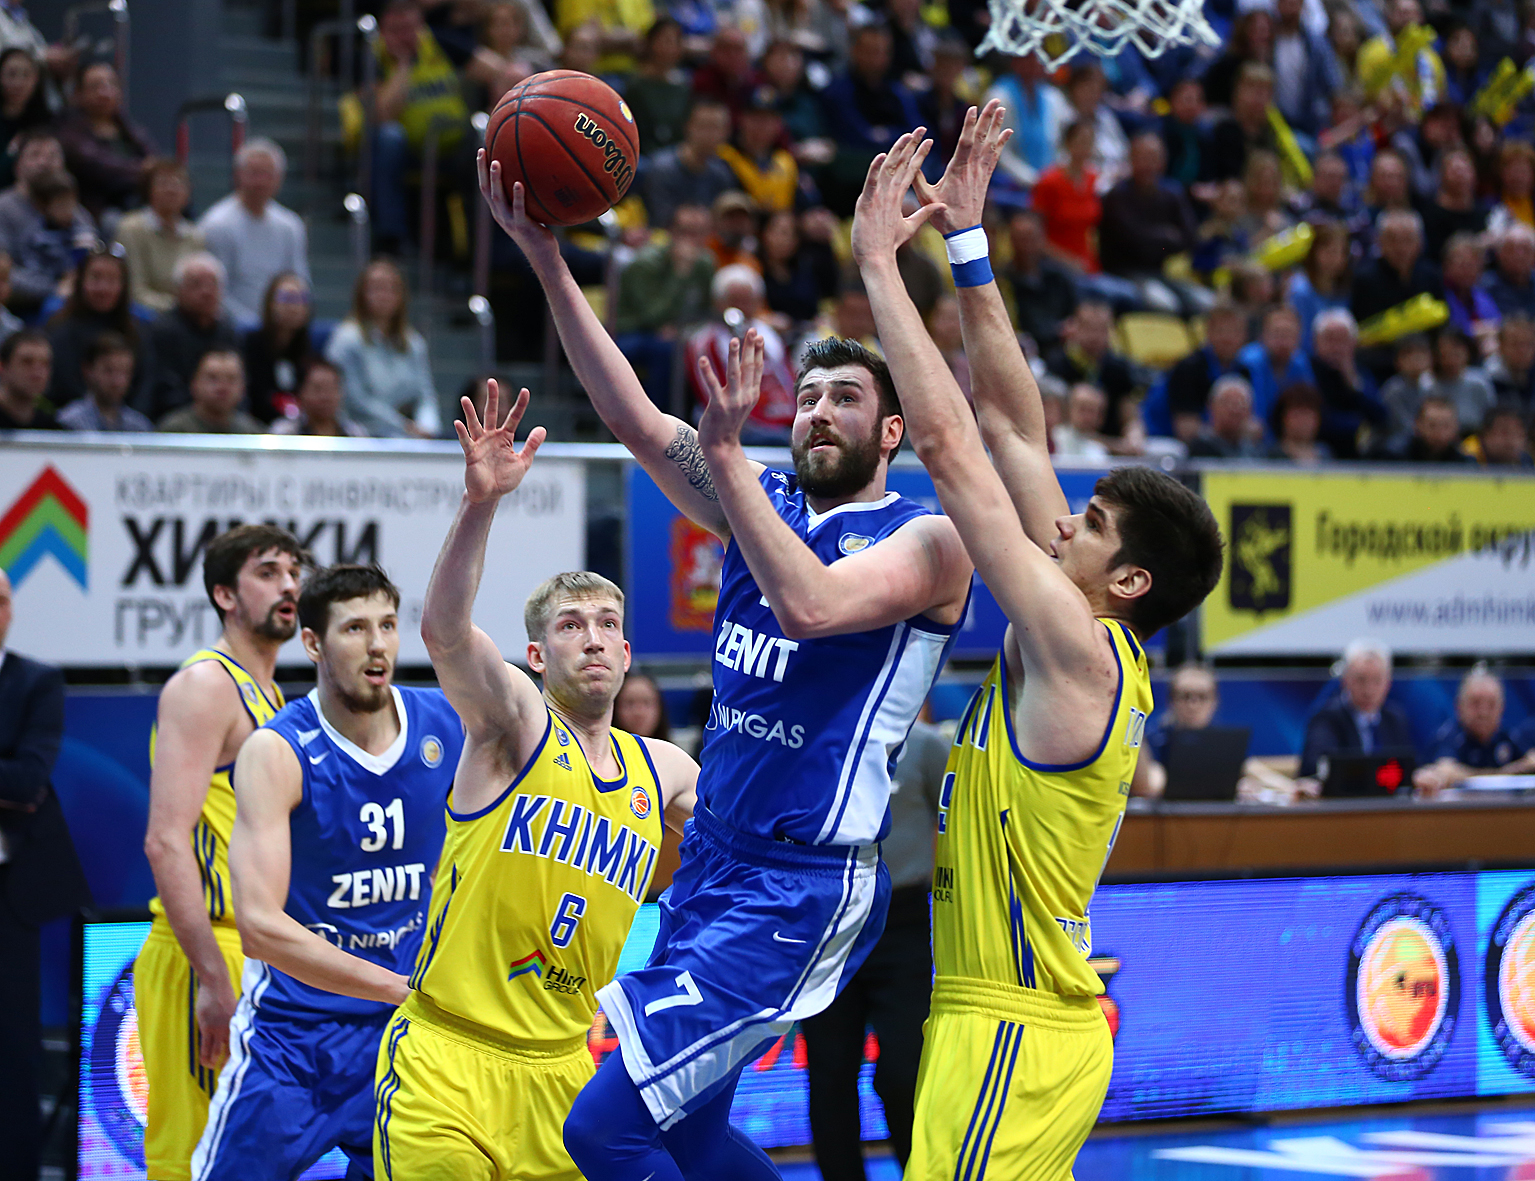 Zenit Downs Khimki Behind Karasev's 23